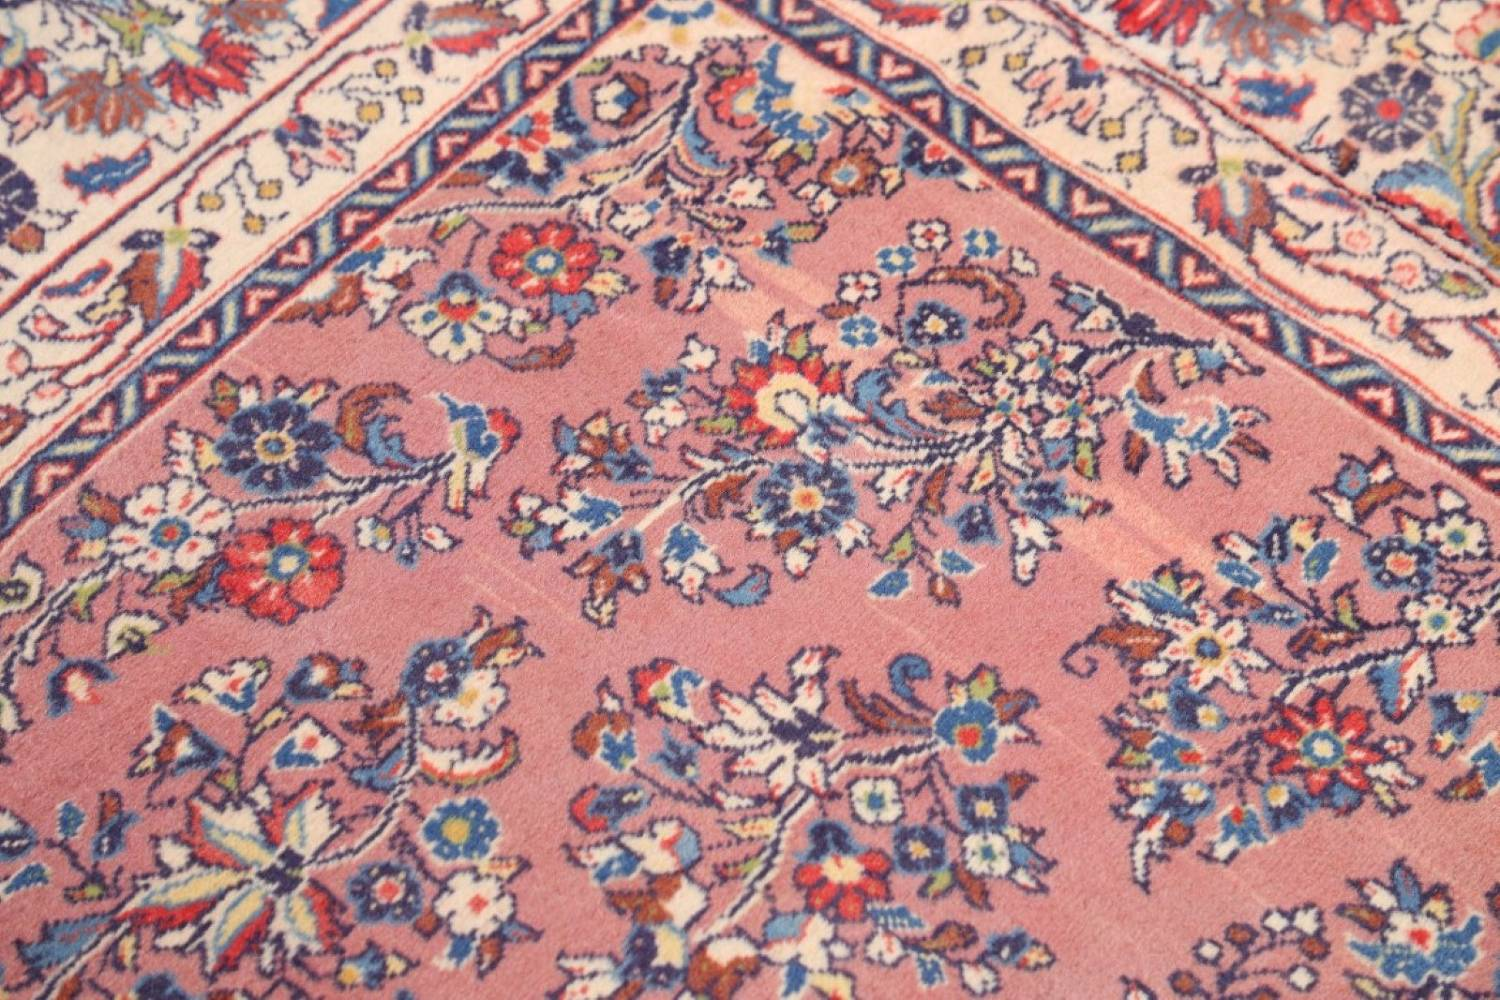 All Over Floral Square 7x7 Sarouk Persian Area Rug